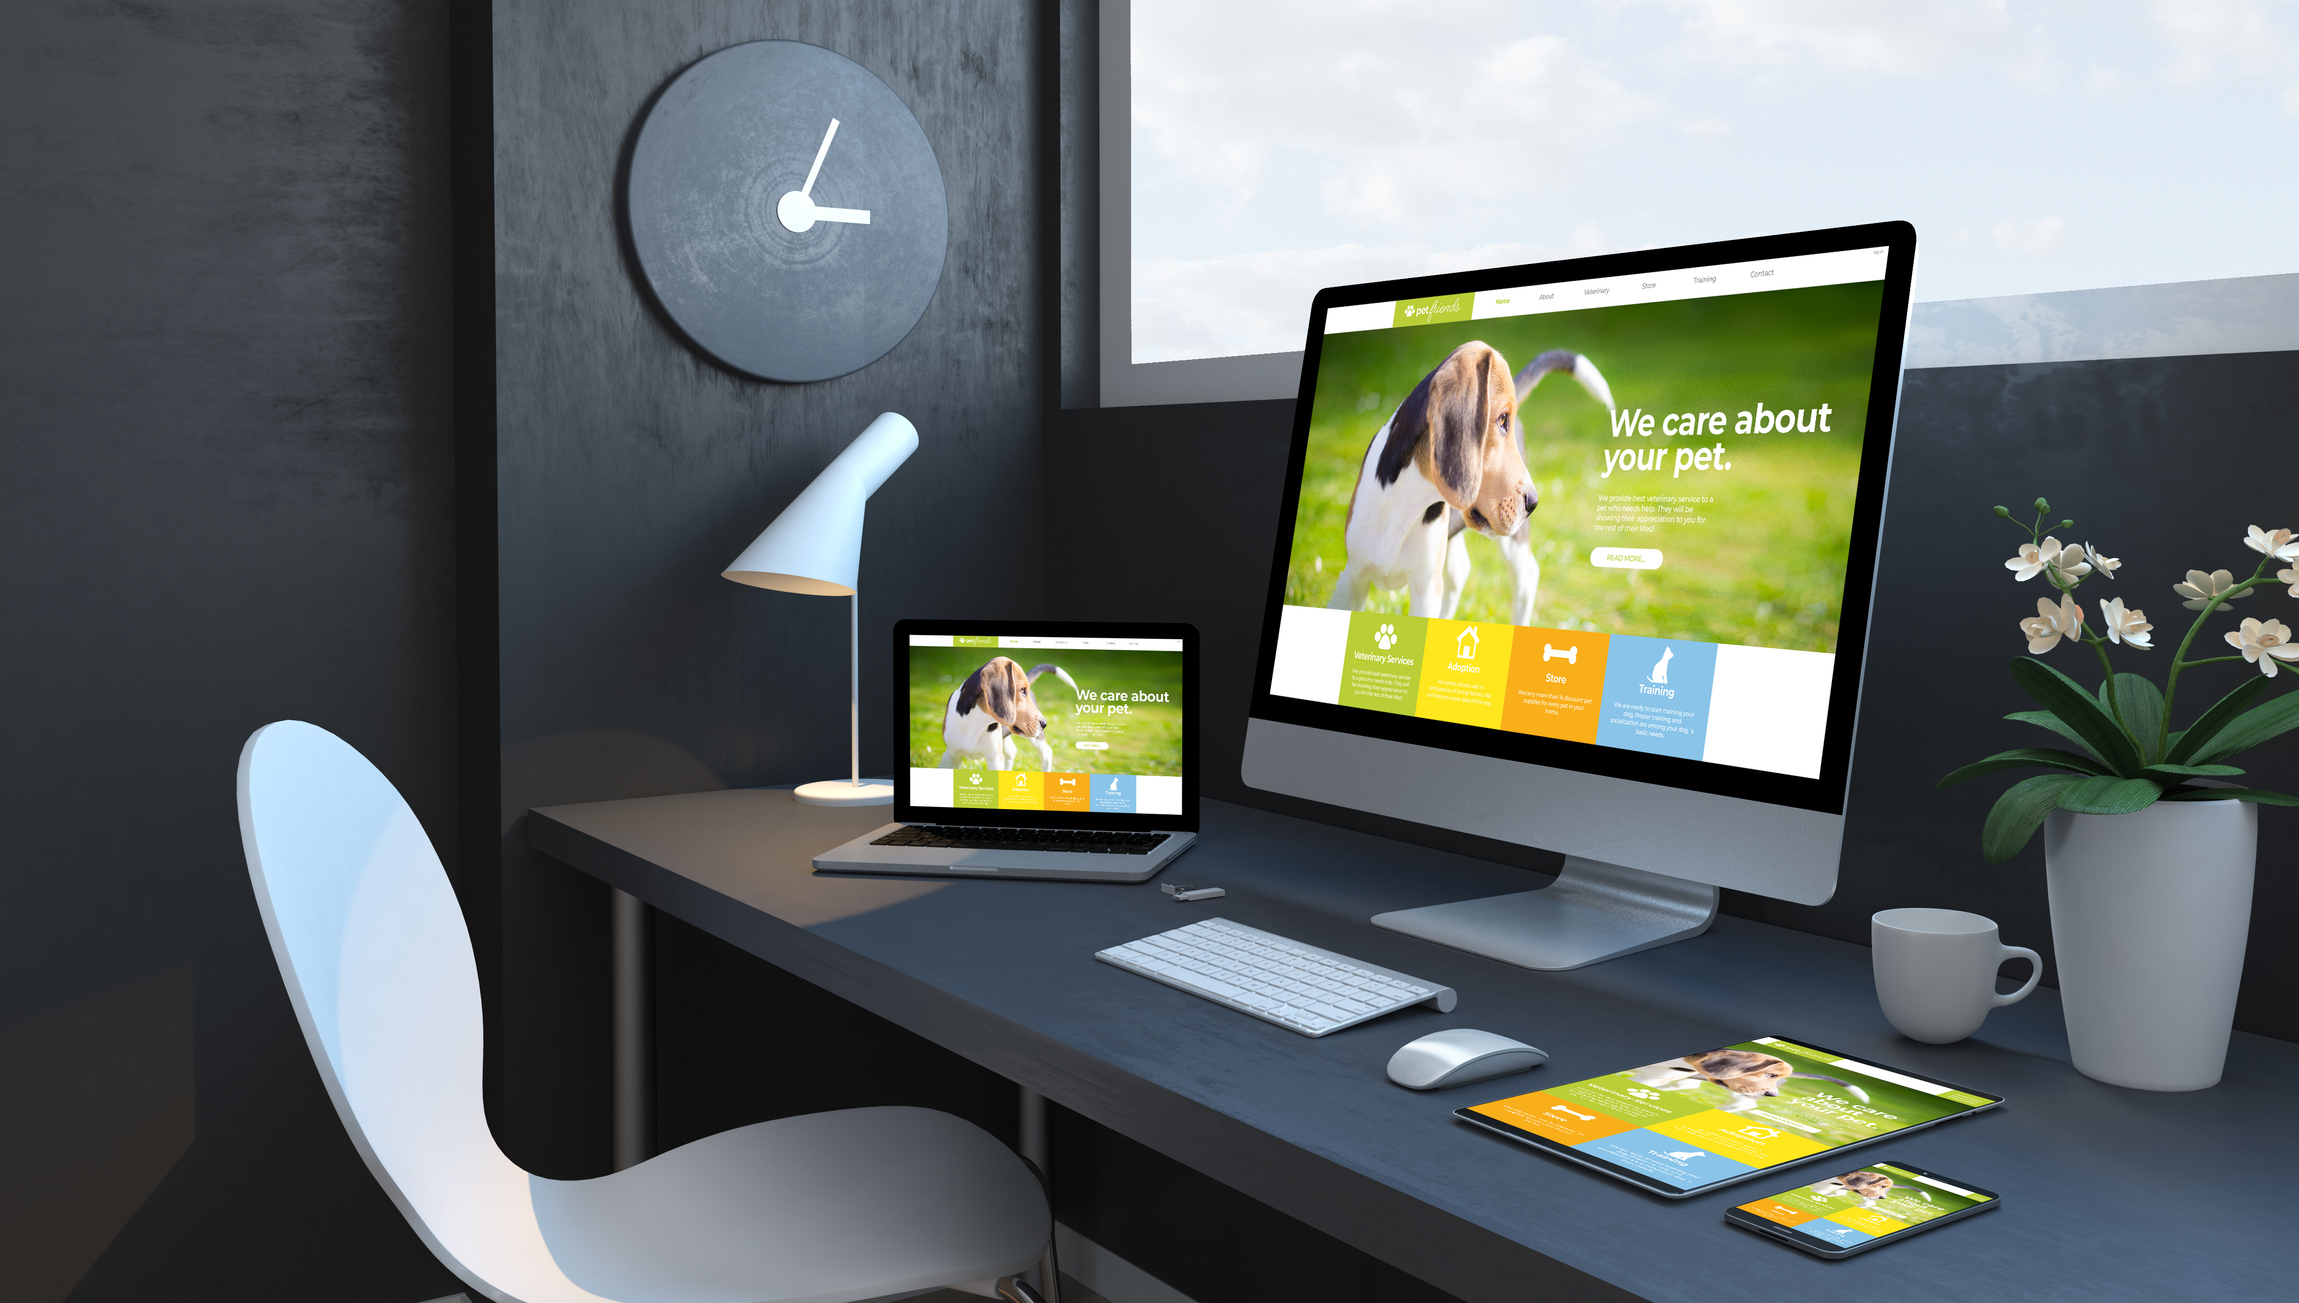 Navy blue workspace with responsive devices 3d rendering pet web design